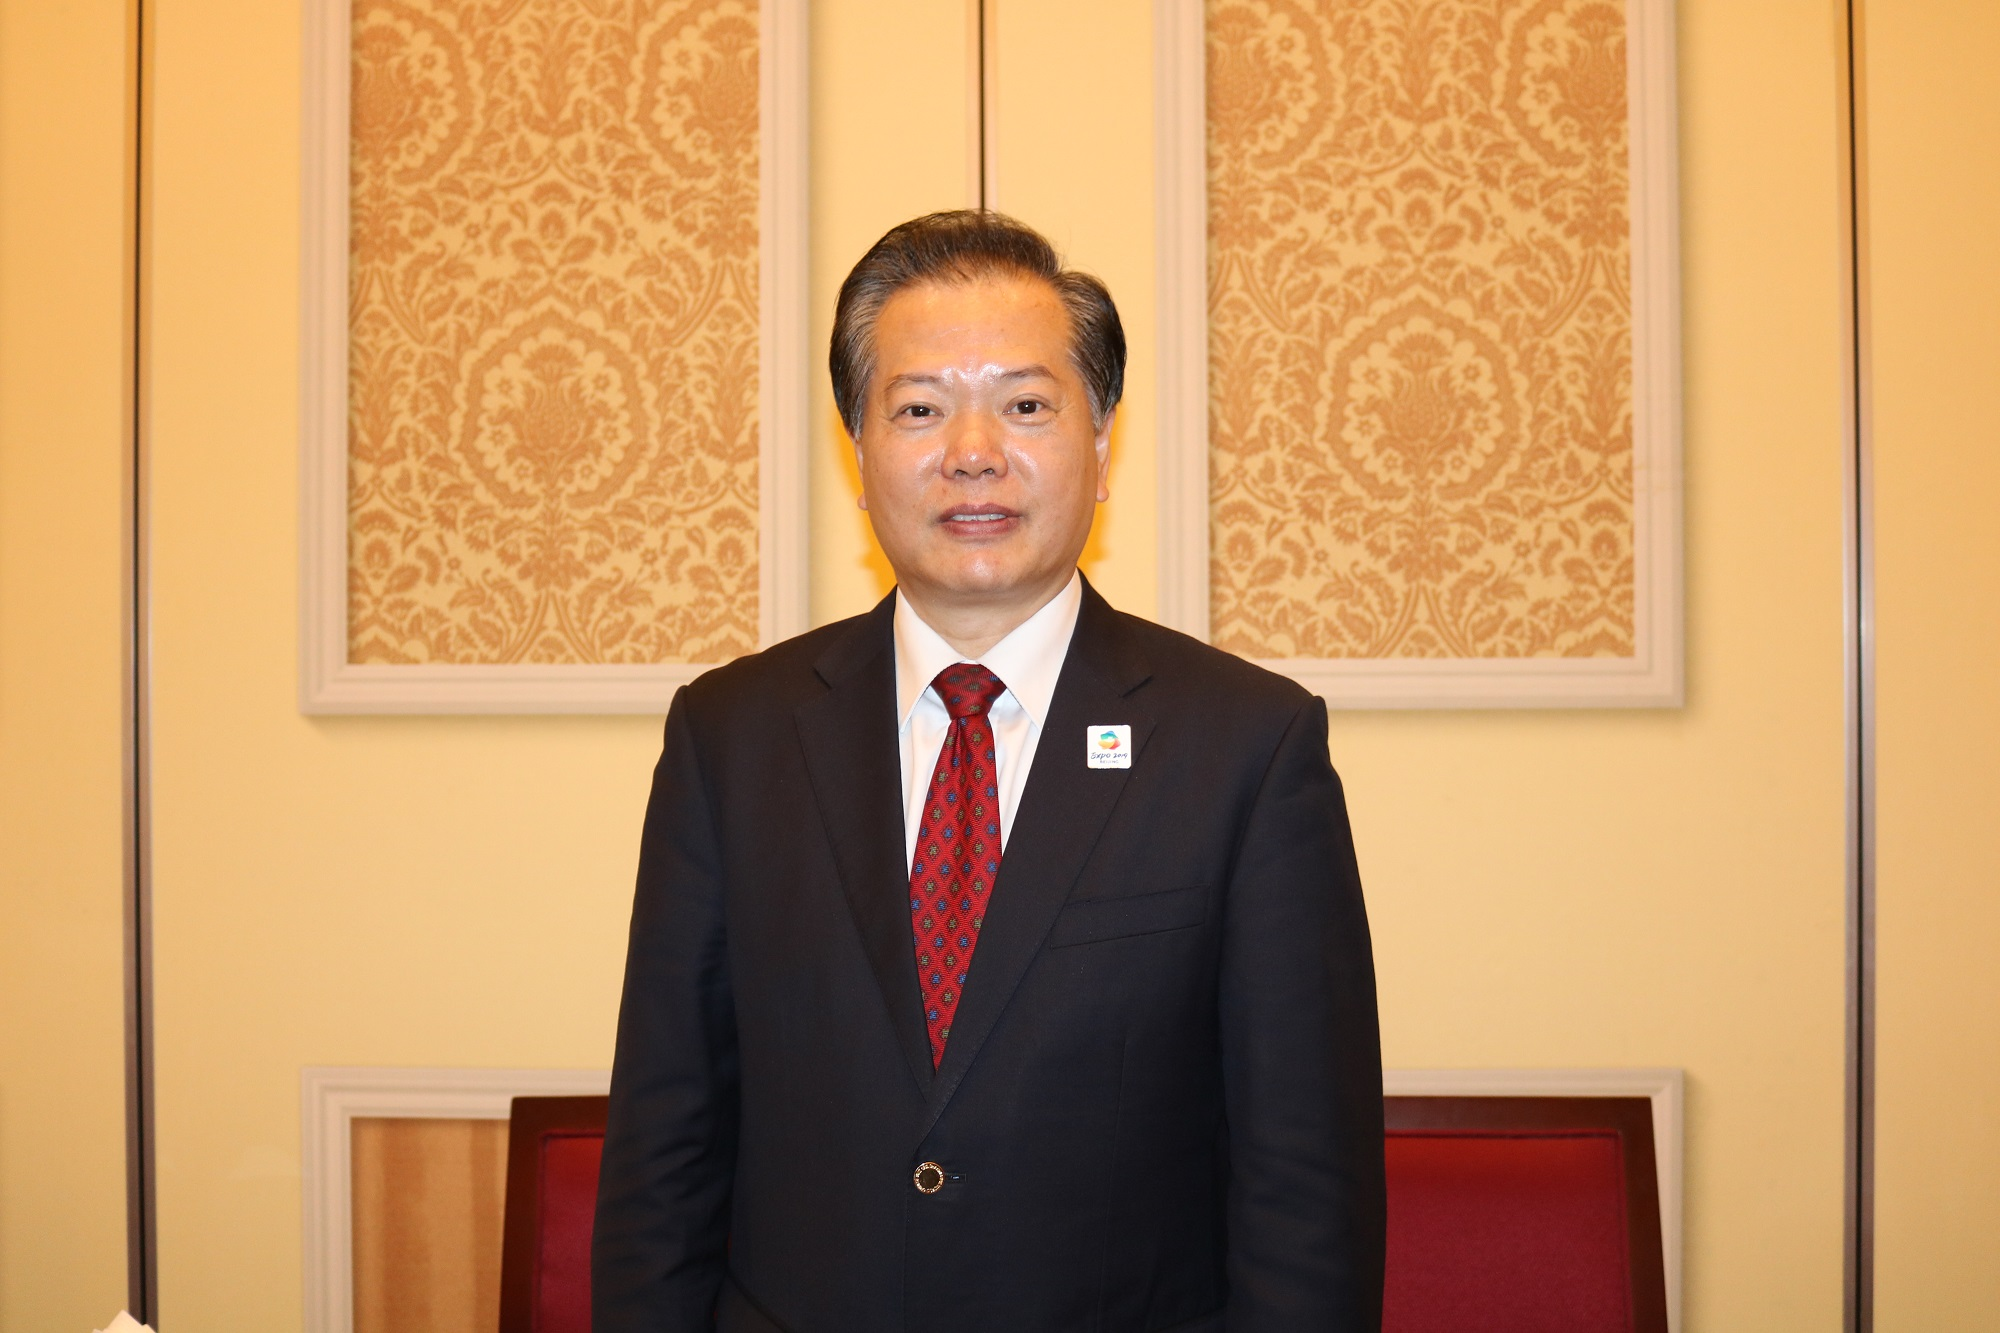 Mr. Wang Jinzhen, Vice Chairman of China Council for the Promotion of International Trade